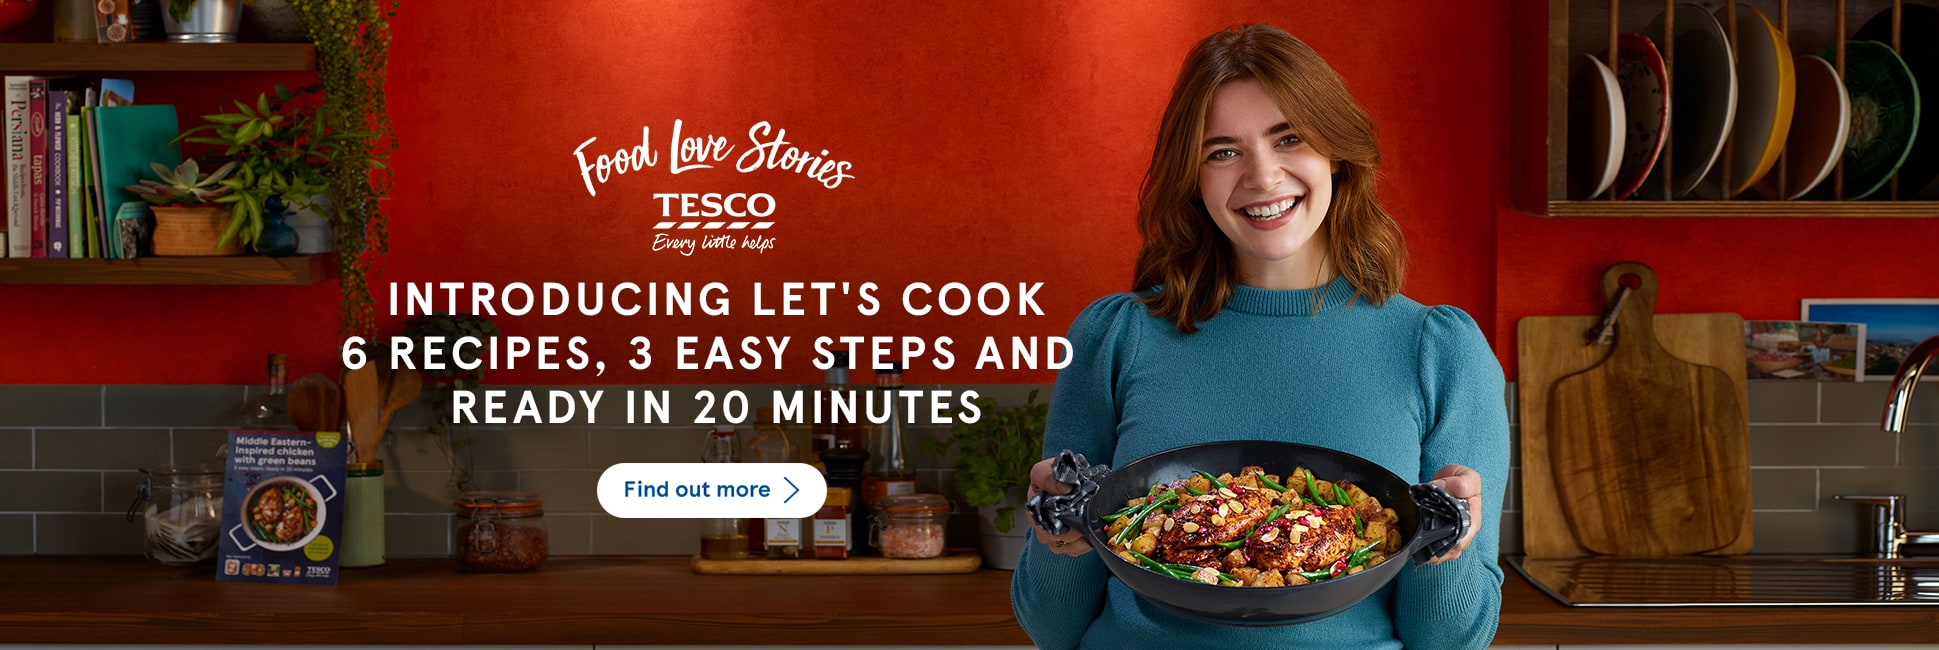 Introducing Let's Cook. 6 recipes, 3 easy steps and ready in 20 minutes. Find out more.